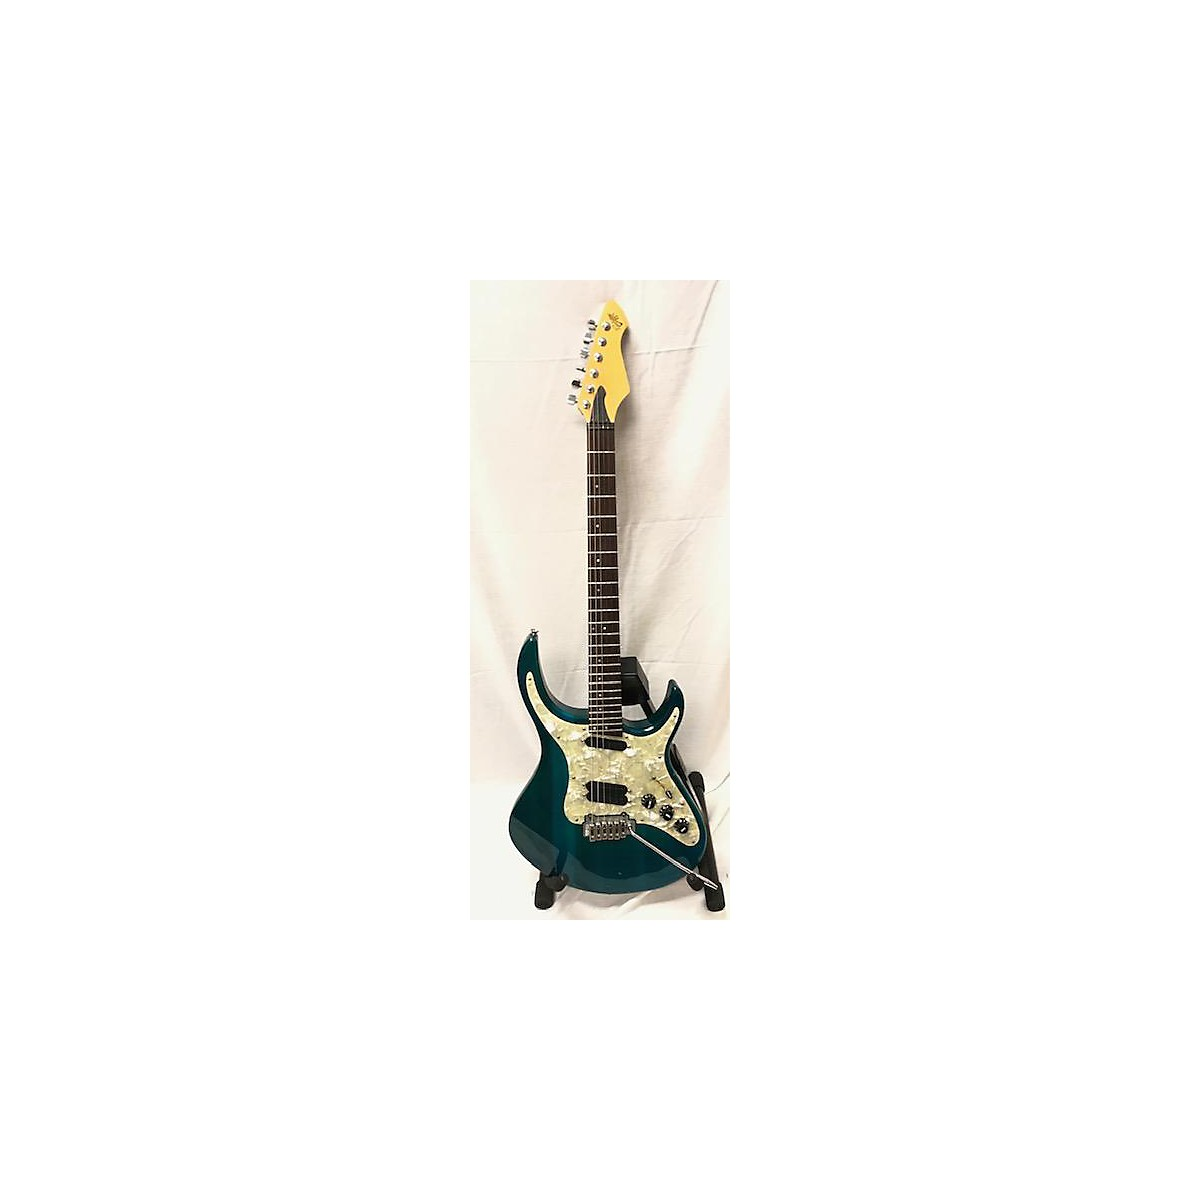 In Store Used Used Revalation RTX Trans Blue Solid Body Electric Guitar